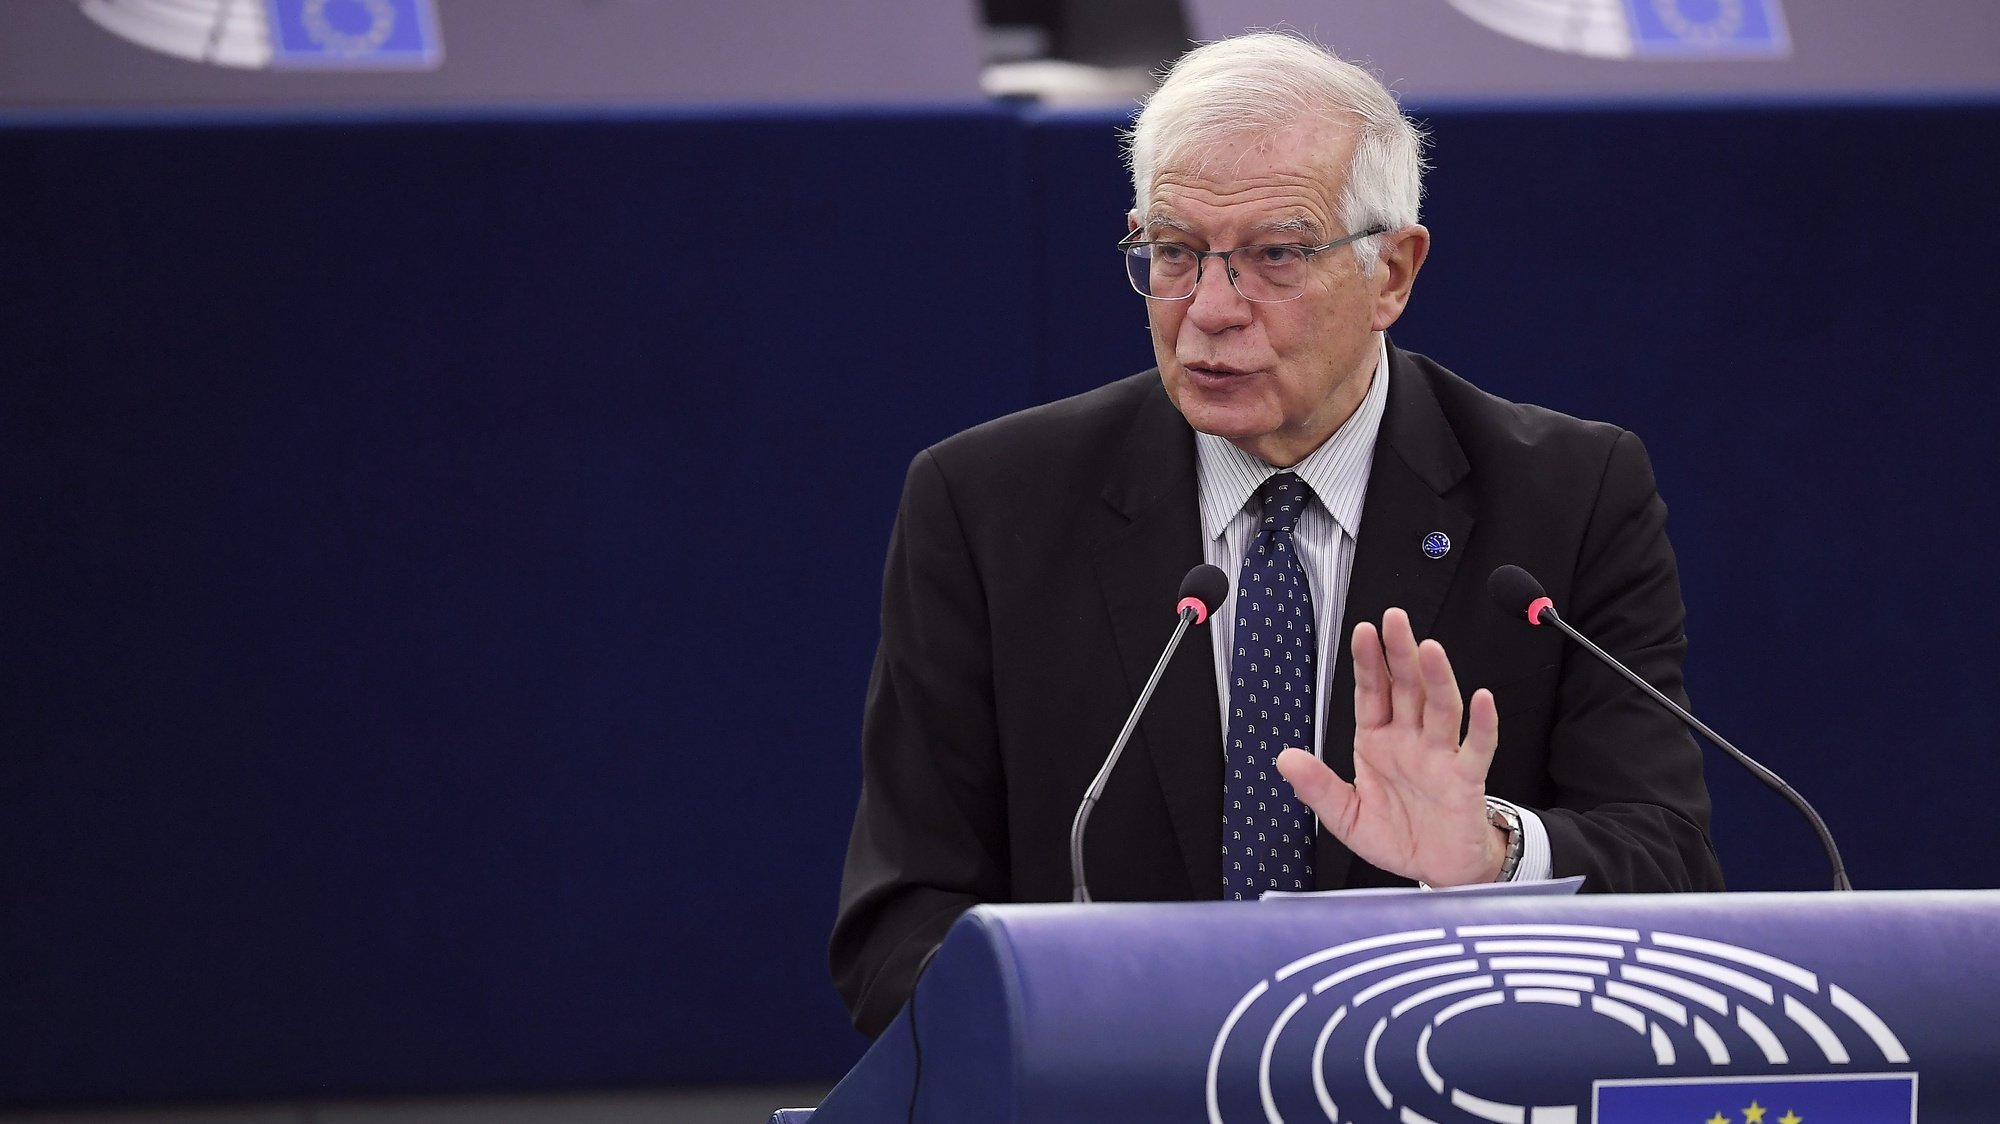 epa09506548 European Union High Representative for Foreign Affairs and Security Policy Josep Borrell delivers a speech during a debate on the future of EU-US relations as part of a plenary session at the European Parliament in Strasbourg, France, 05 October 2021.  EPA/FREDERICK FLORIN / POOL